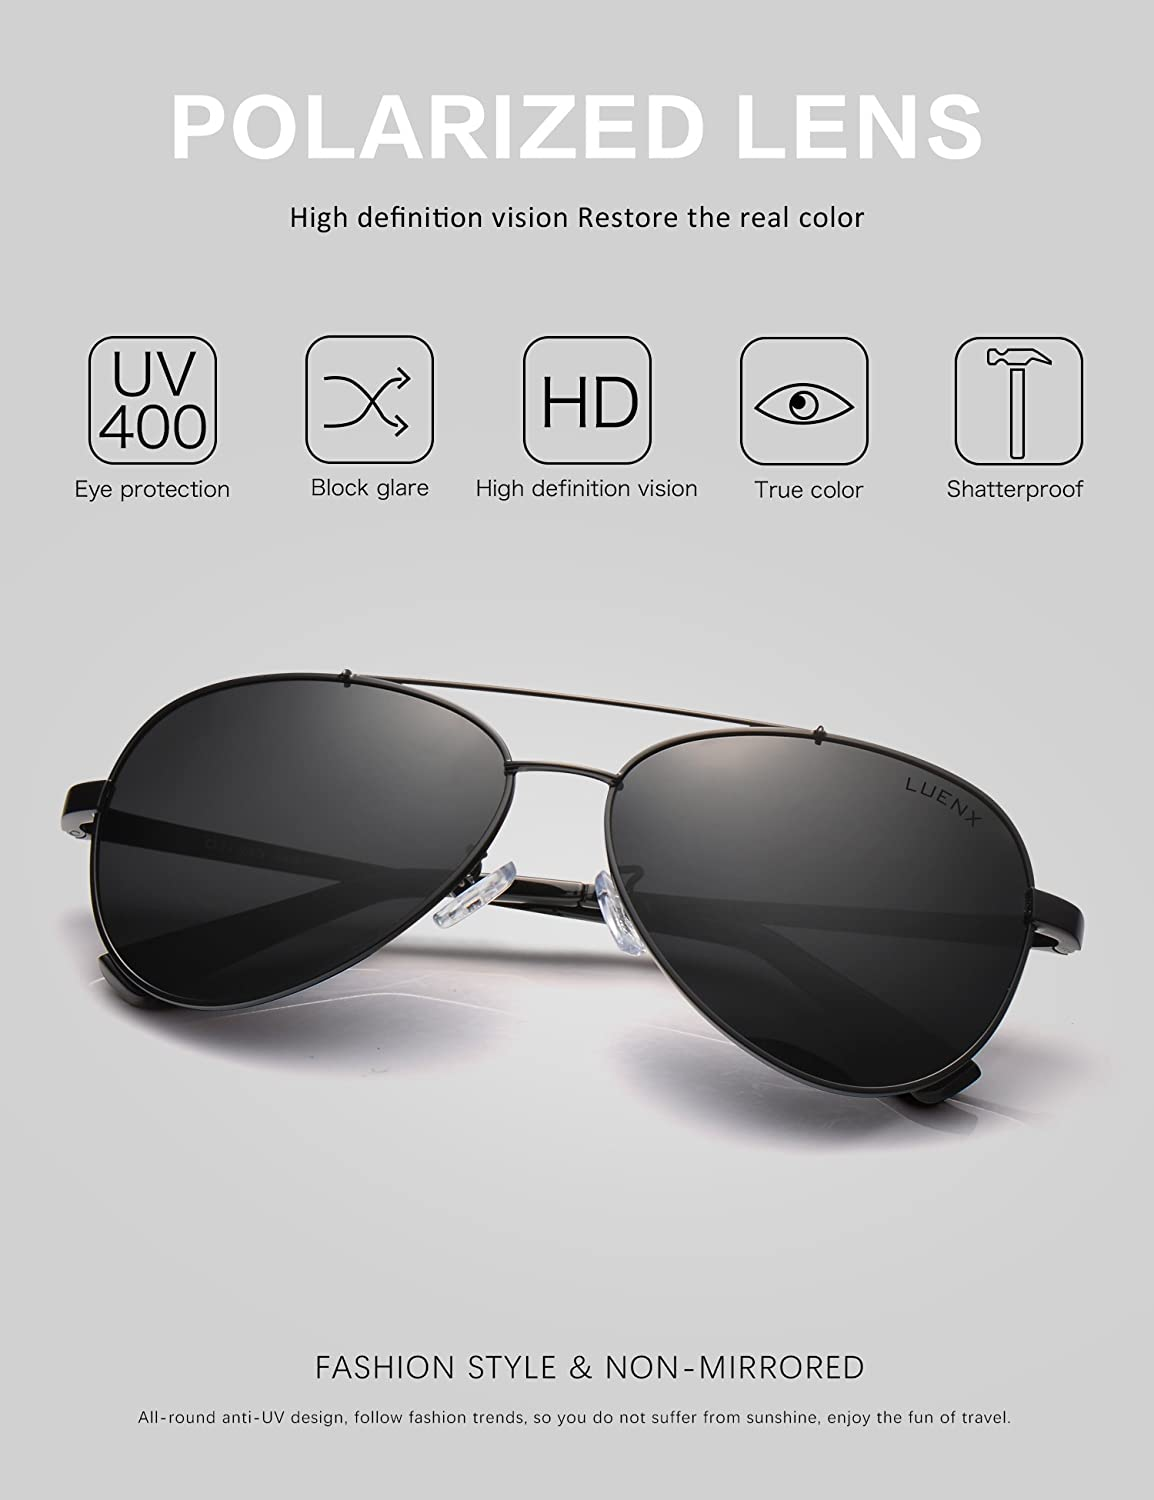 2fc451f563eb3 Amazon.com  LUENX Men Women Aviator Sunglasses Polarized Non-Mirror Black  Lens Black Metal Frame with Accessories UV 400 Protection 60MM  Sports    Outdoors